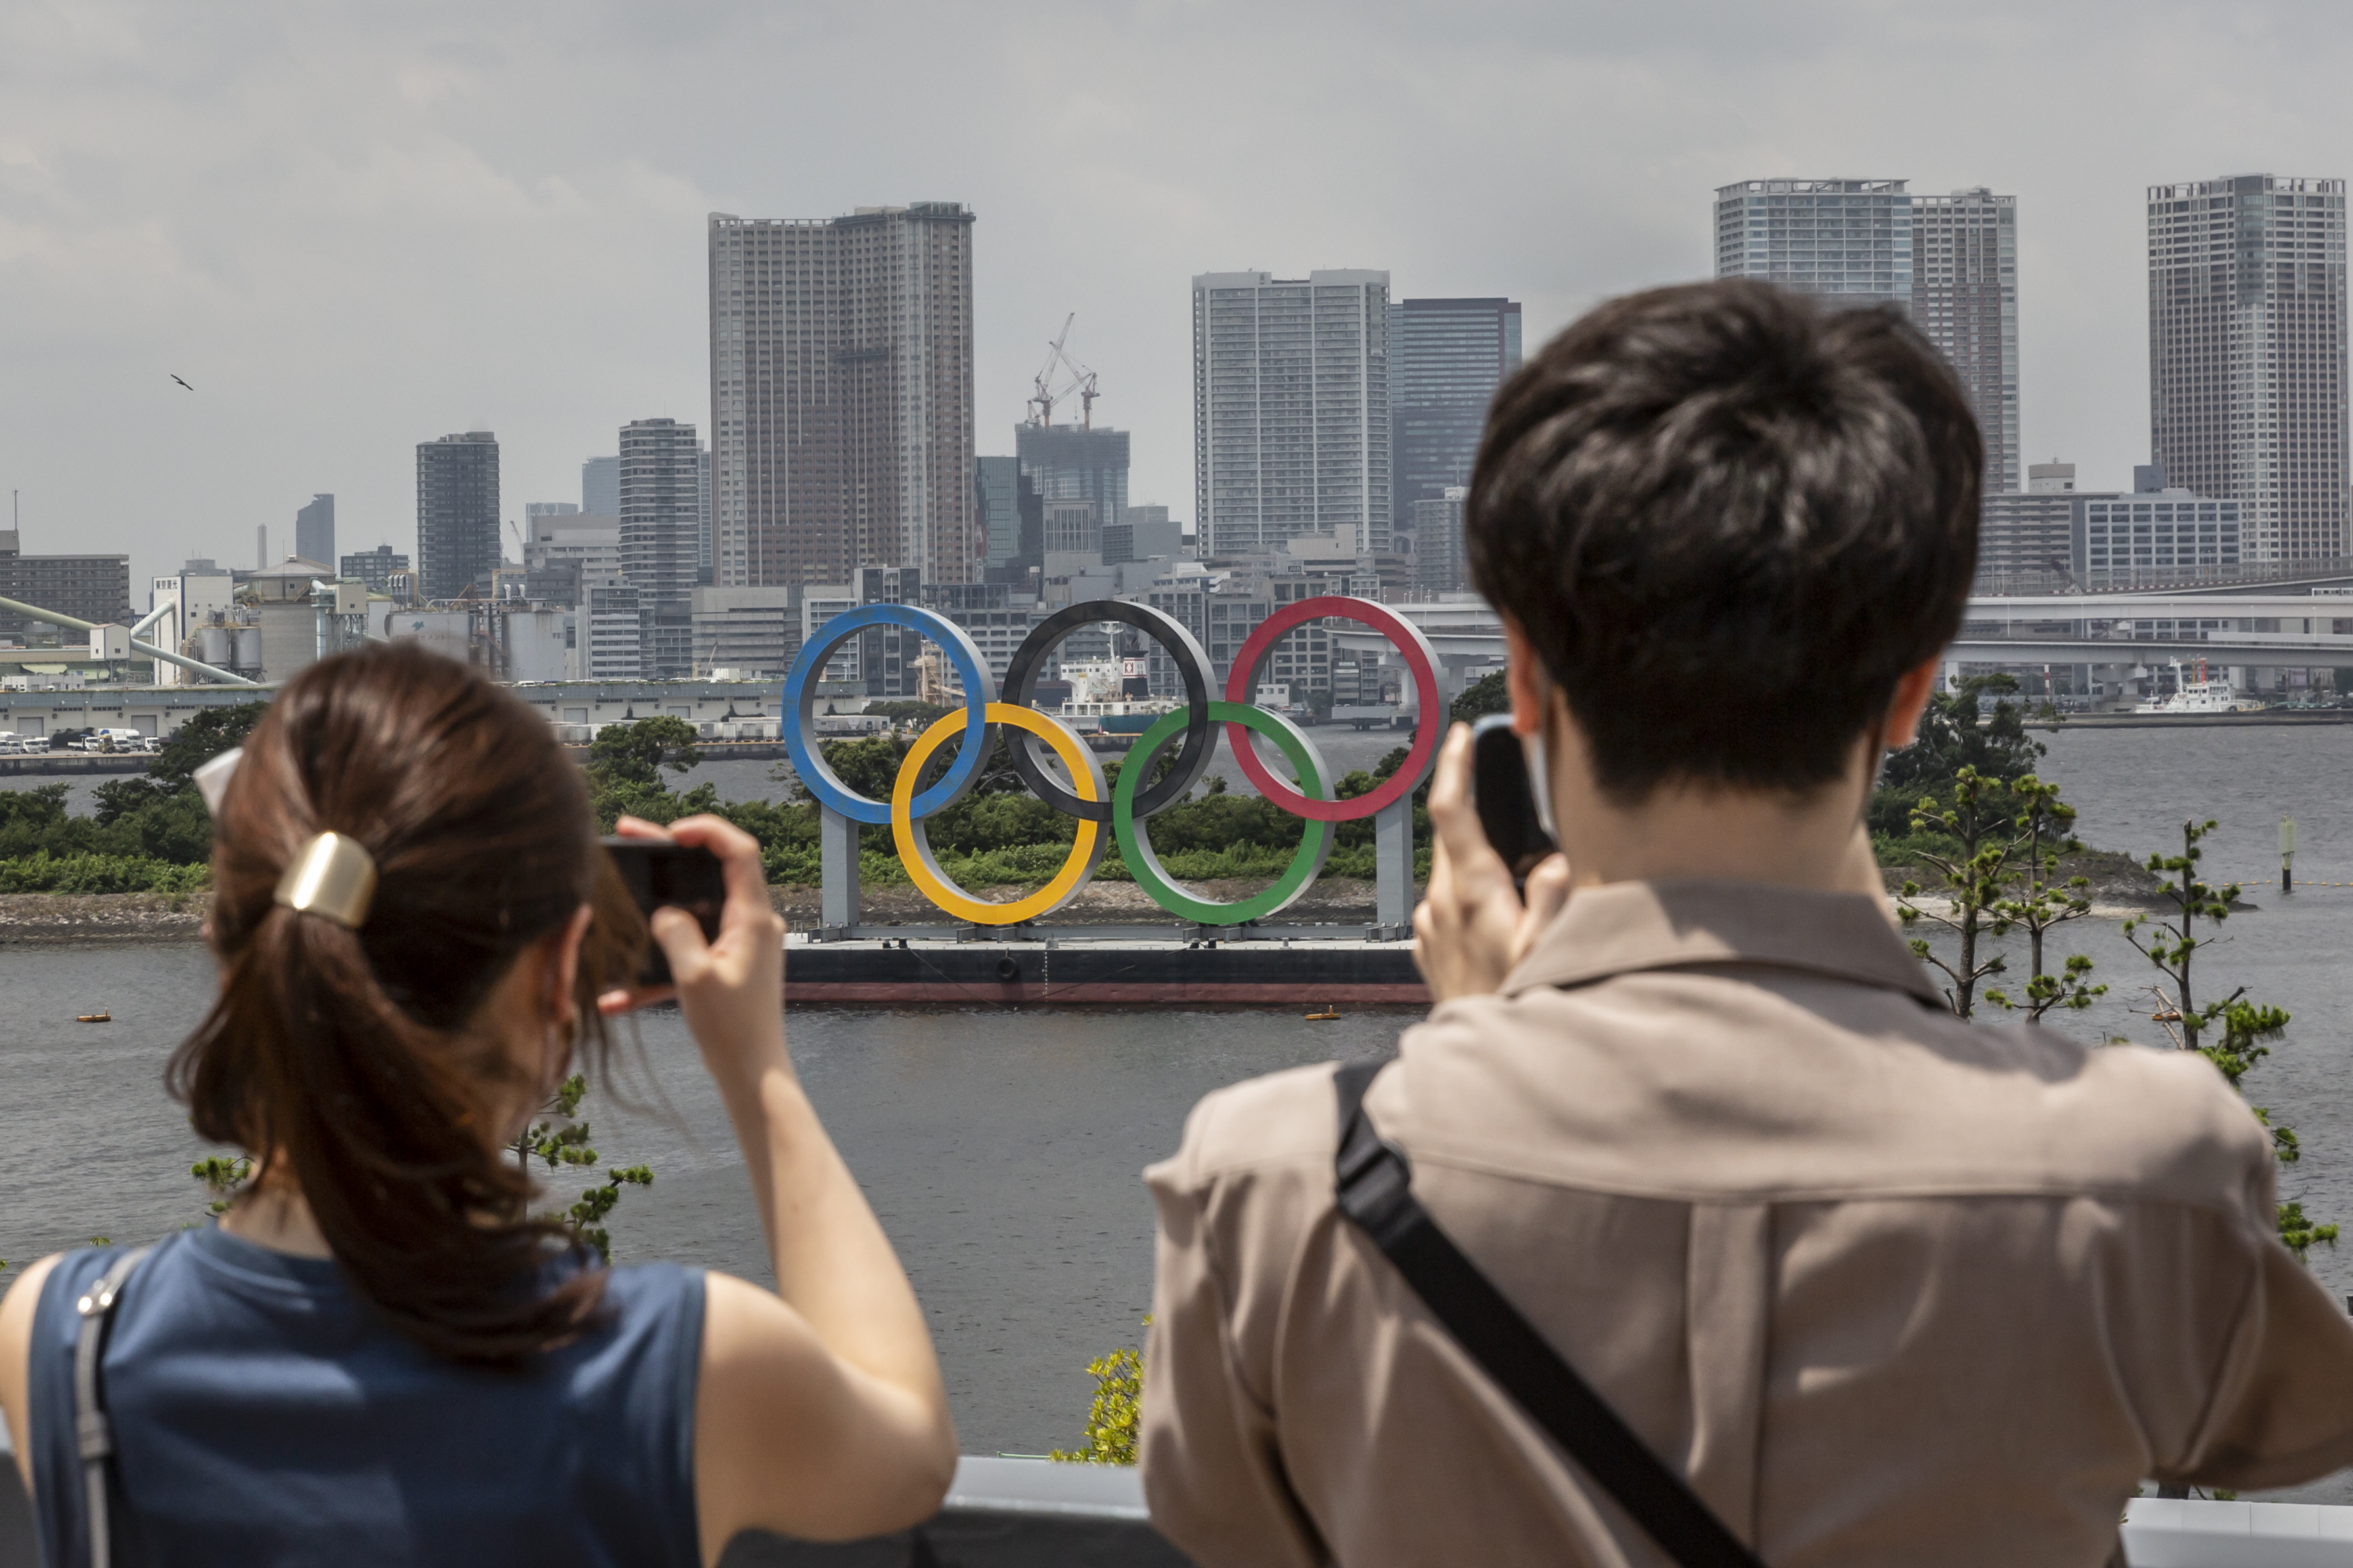 Will the Olympics set the world back in its fight against COVID-19? Experts weigh in